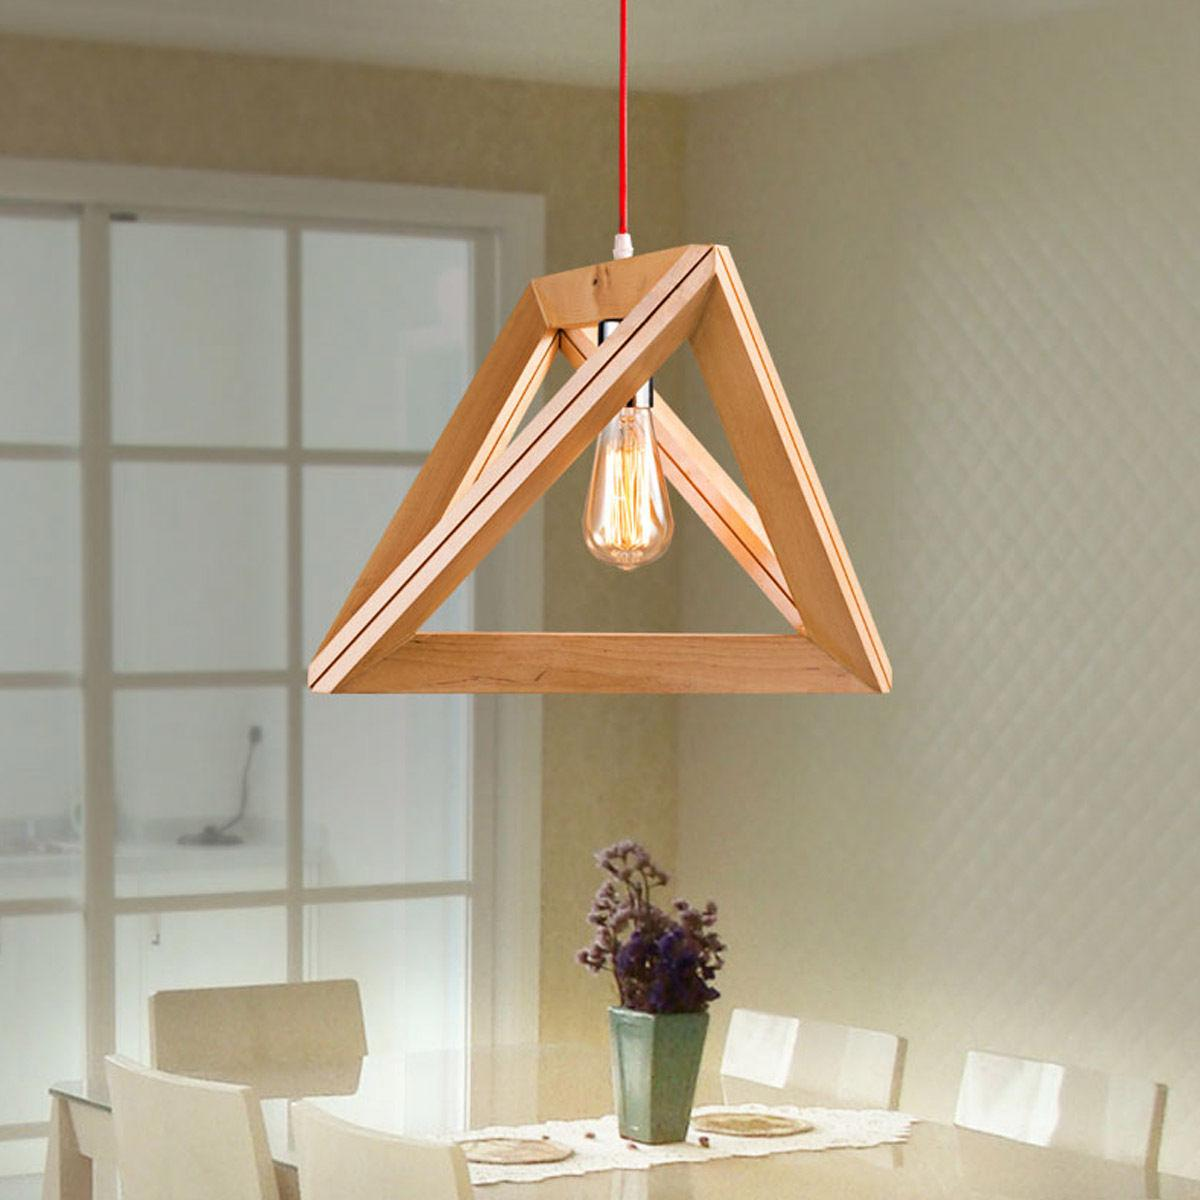 new modern art wooden ceiling light pendant lamp lighting light